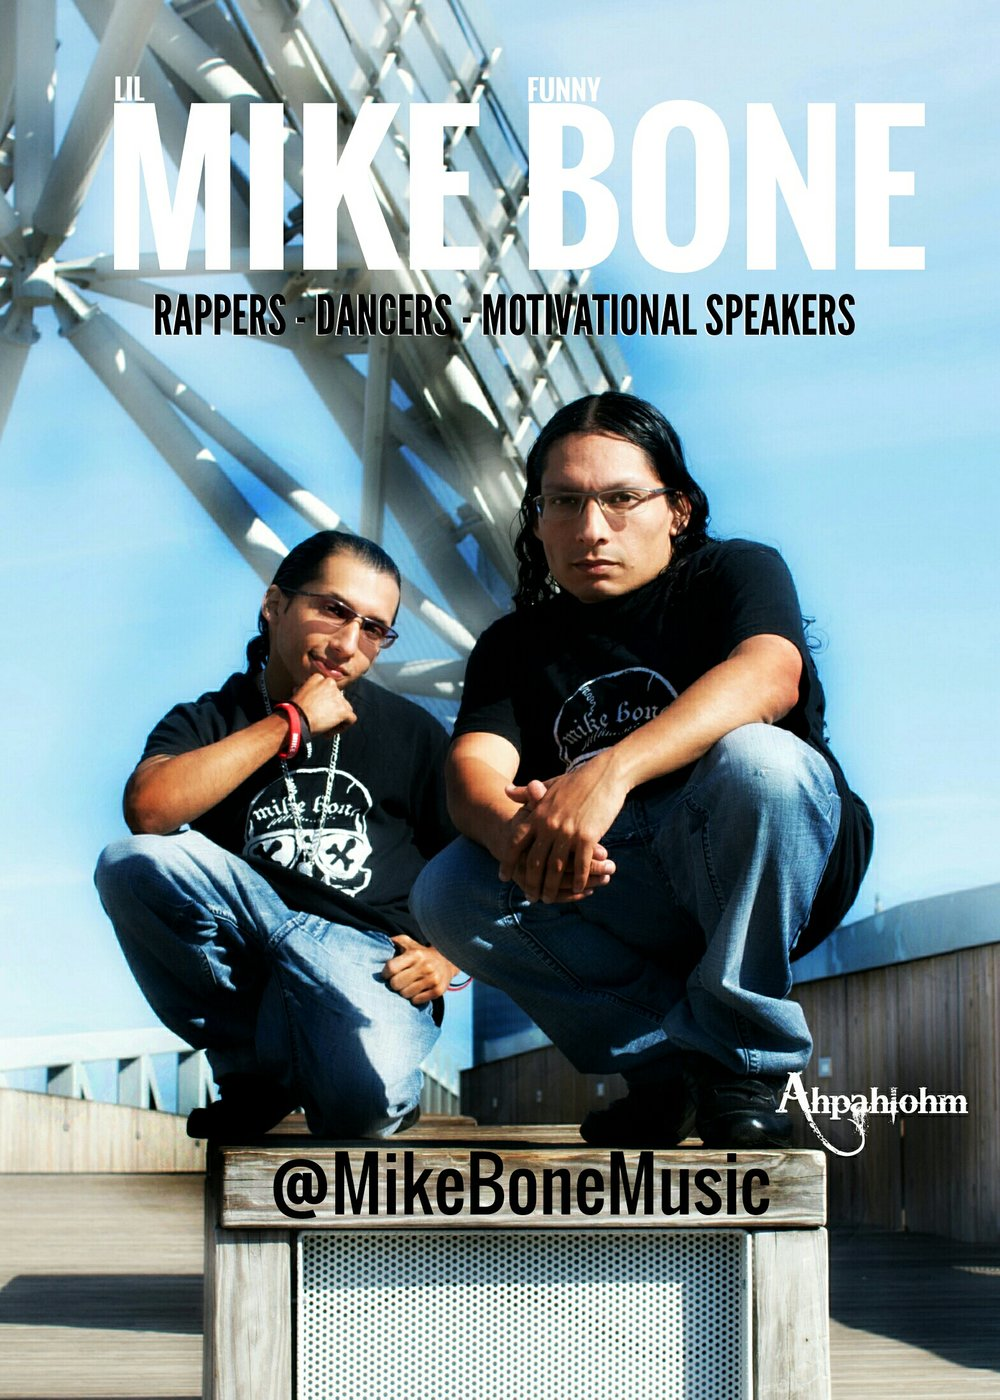 please see www.mikebonemusic.com